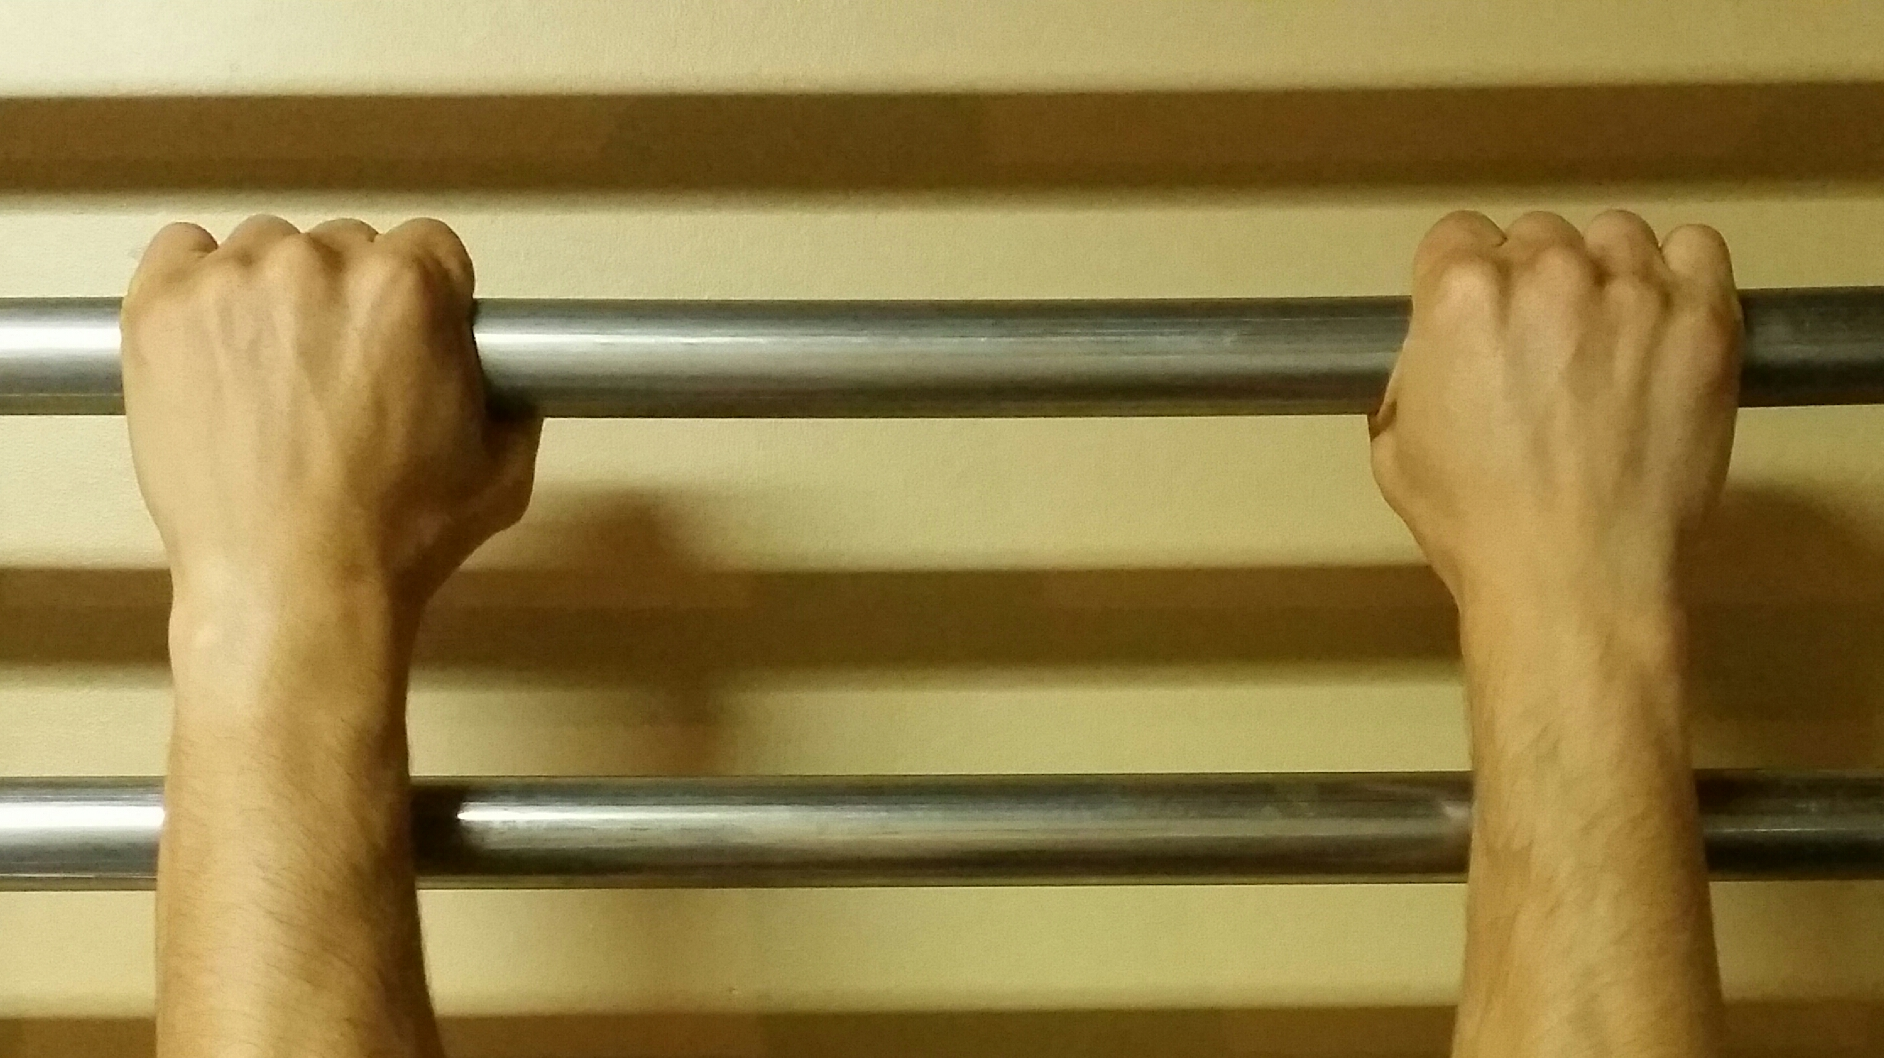 Pronated Grip (thumbs in)